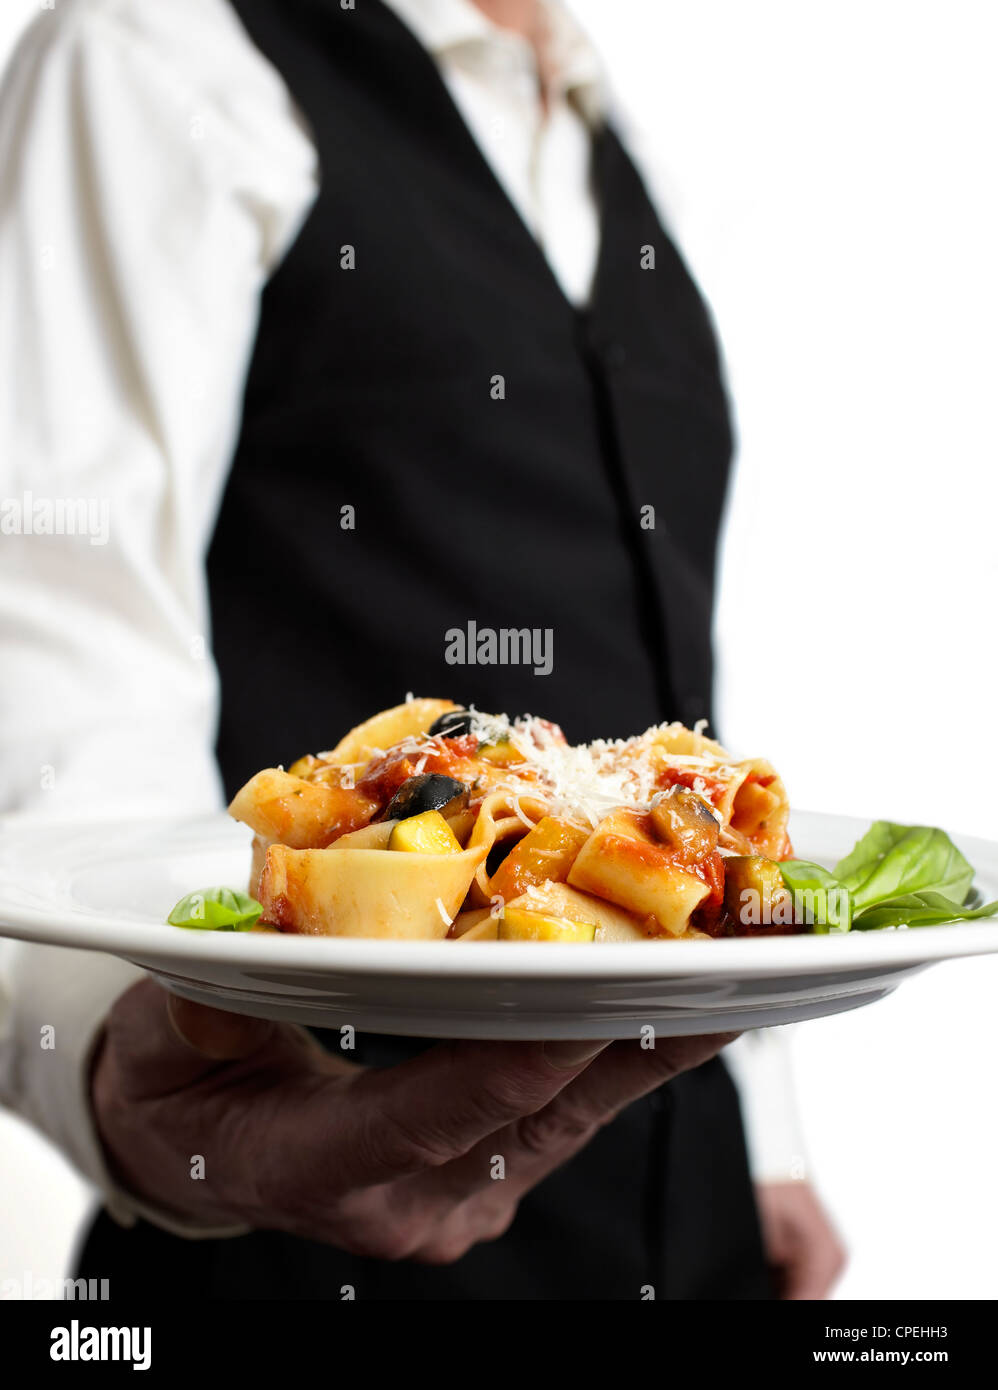 A waiter is holding a plate with pasta, tomato sauce, parmesan and basil.€ Focus on plate. Close-up. - Stock Image